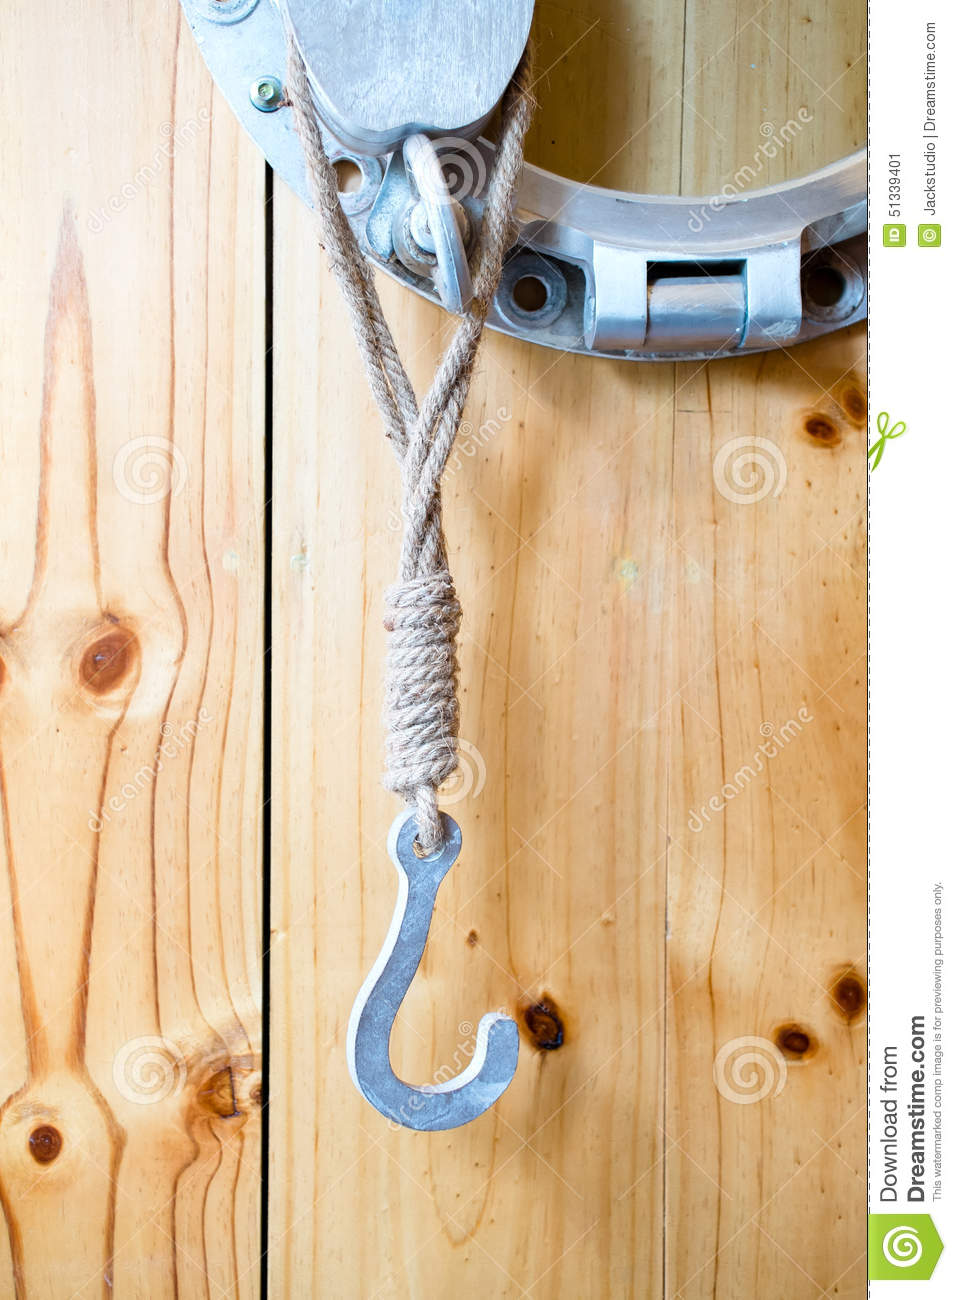 Vintage Hook Hanging On Wooden Panel Wall Stock Image - Image of ...